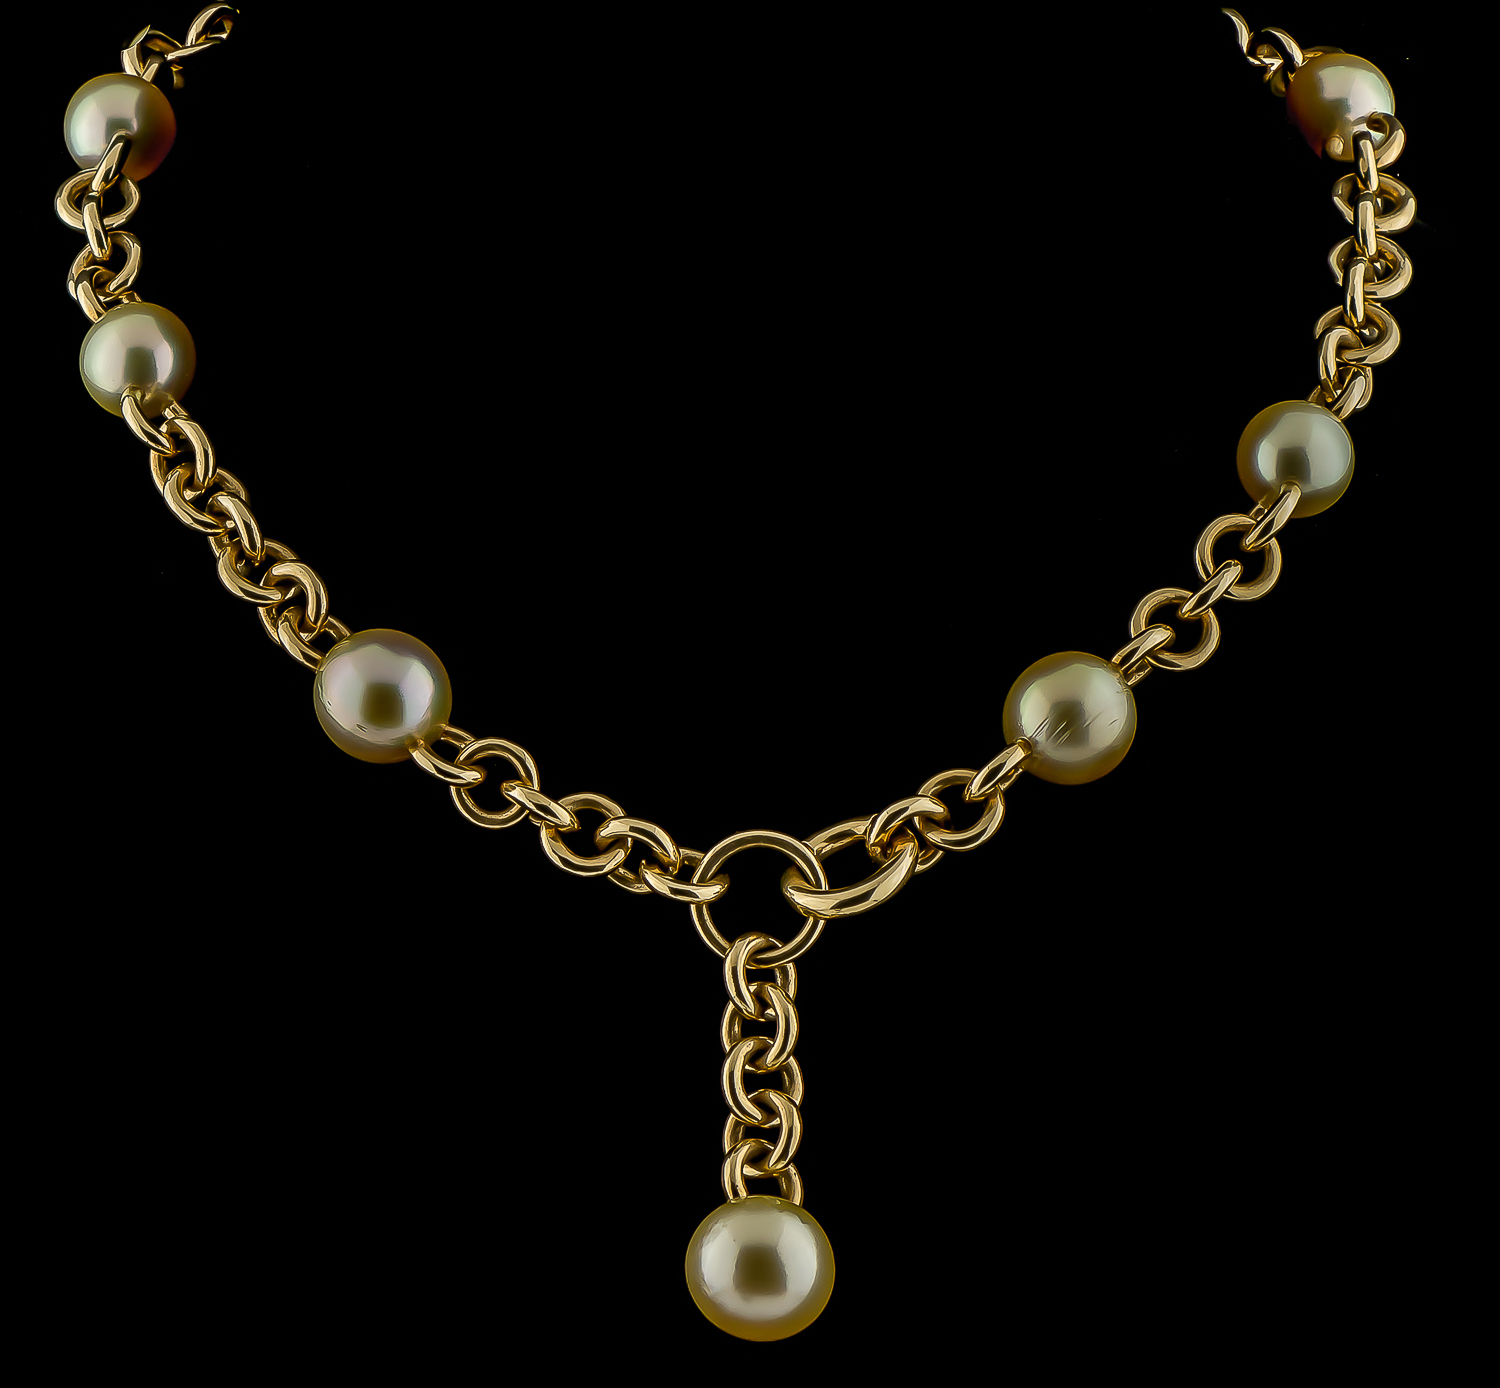 18k Yellow Gold And Golden Pearl Necklace